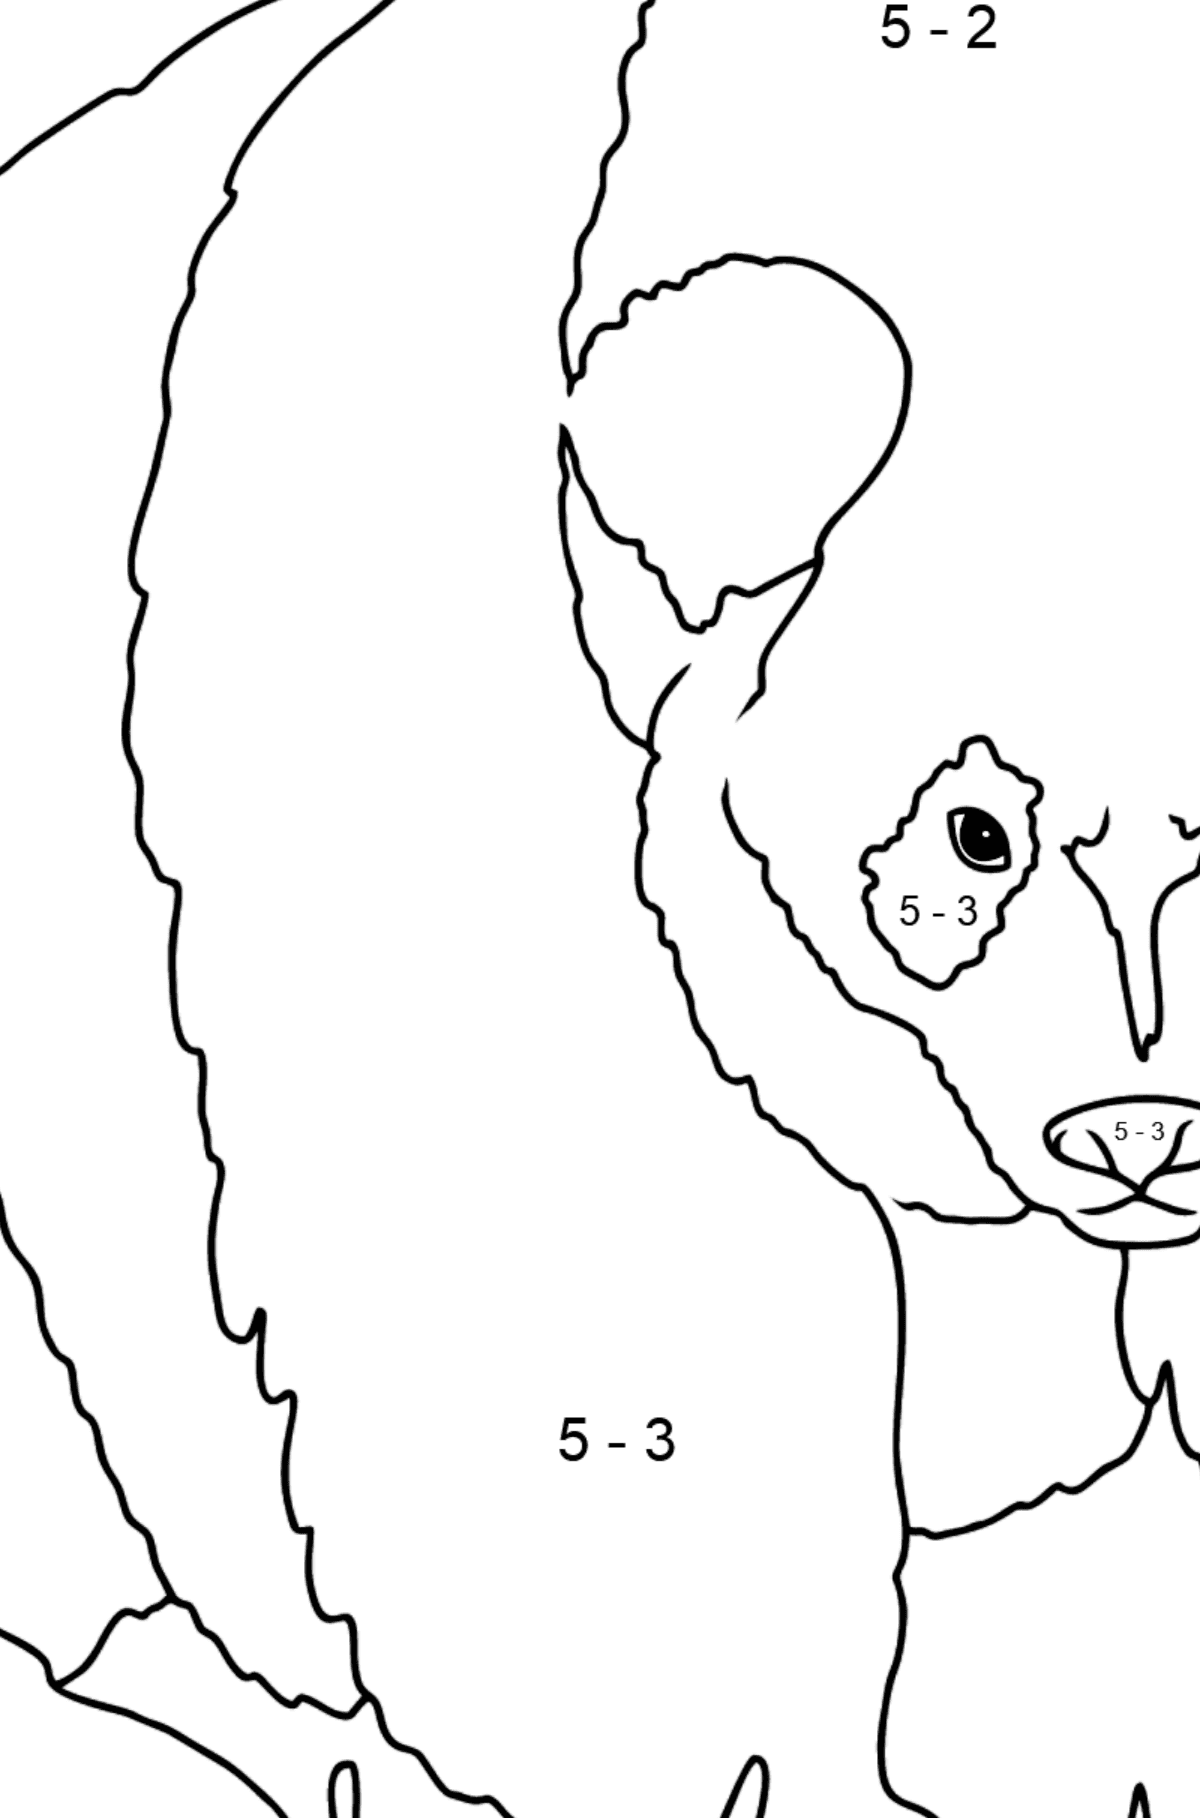 Coloring Page - A Panda is Standing - Math Coloring - Subtraction for Kids